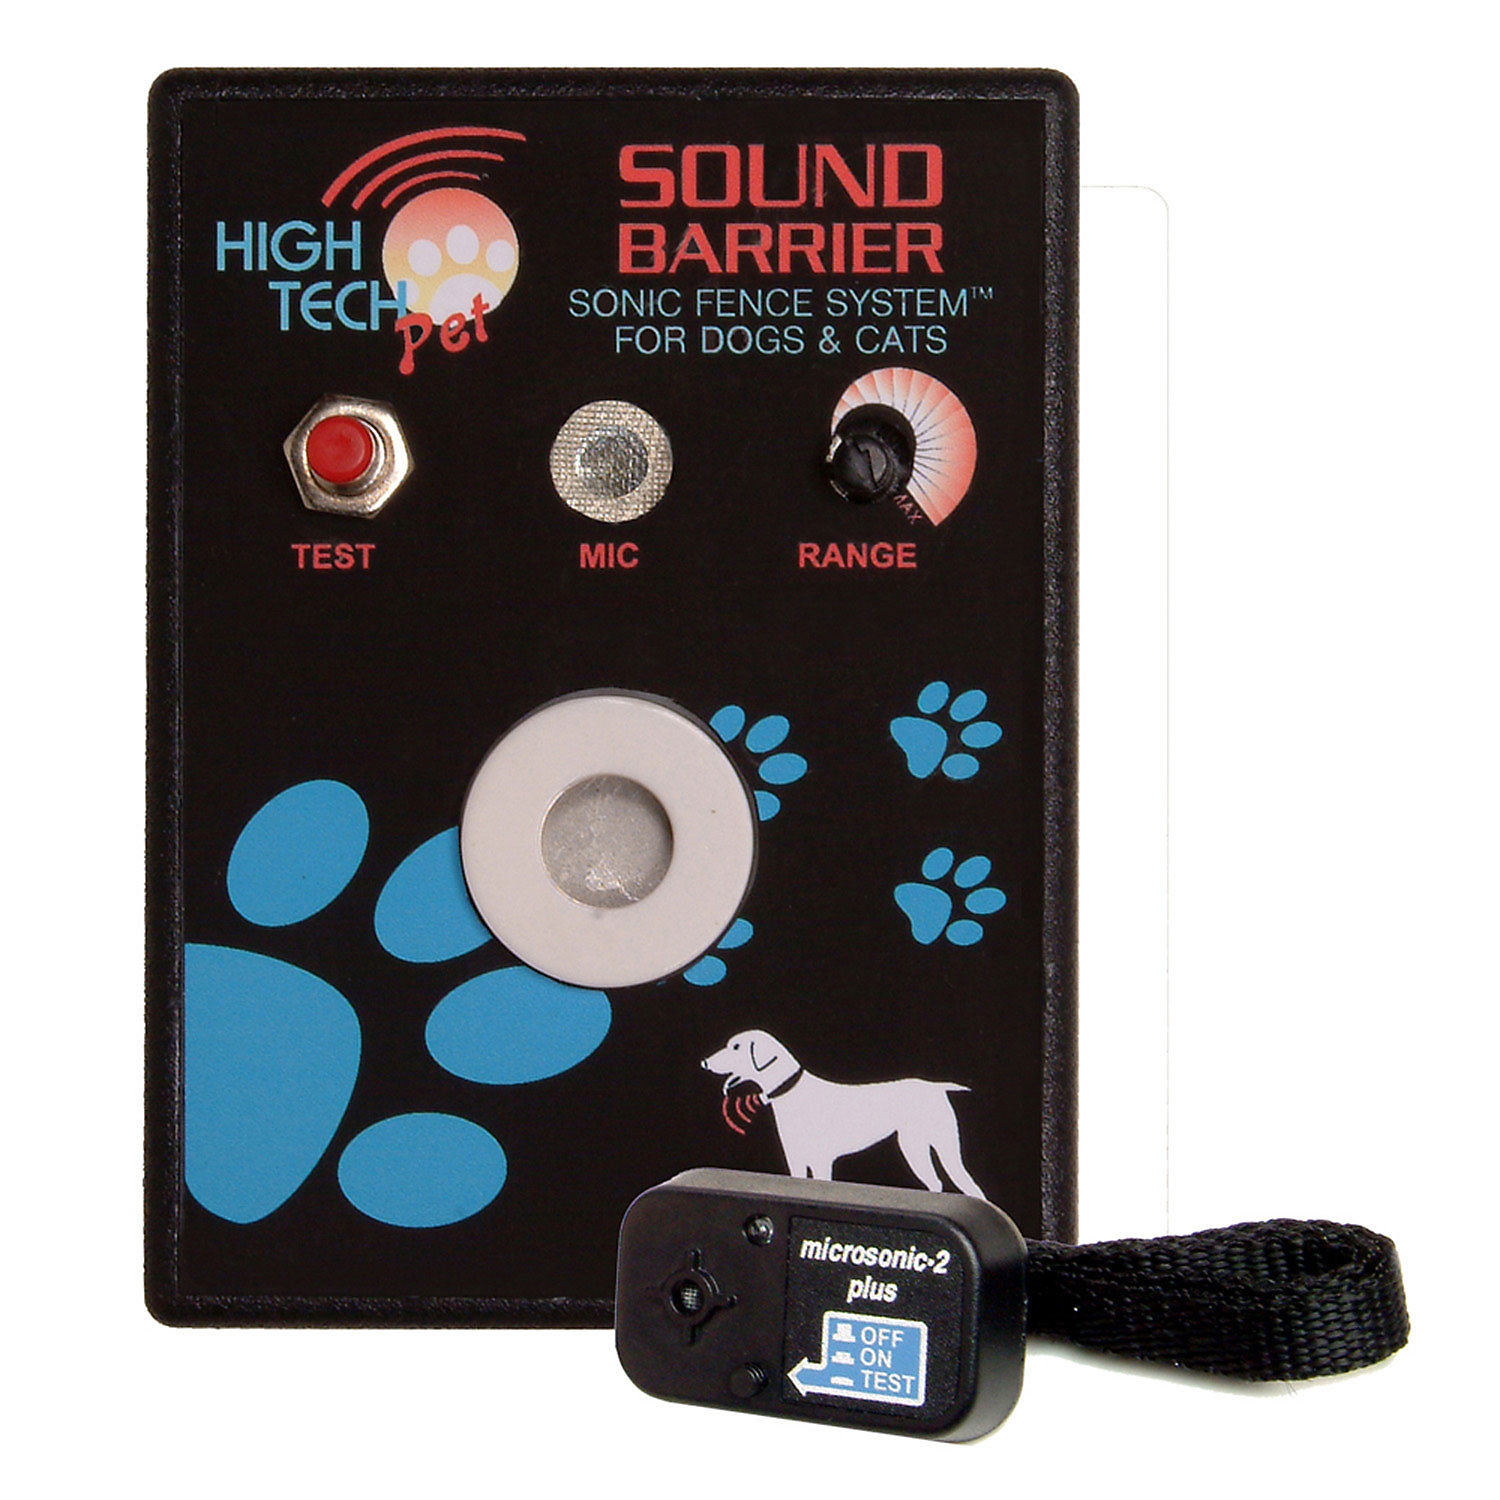 High Tech Pet Sound Barrier Indoor Pet Barrier